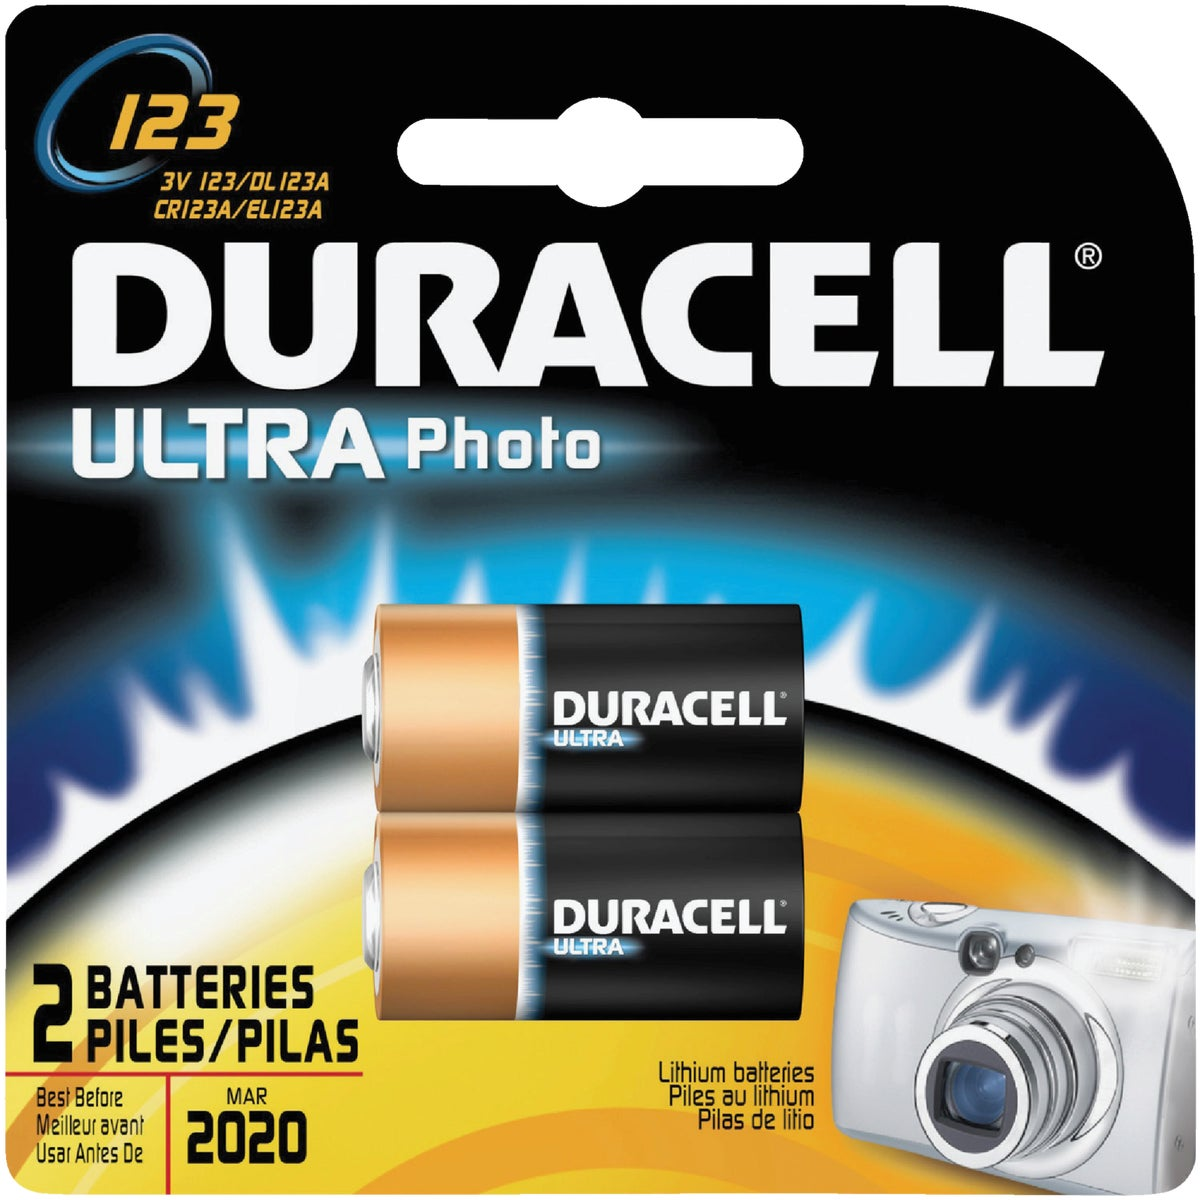 2PK DL123 3V CAM BATTERY - DL123ABPK by P & G  Duracell